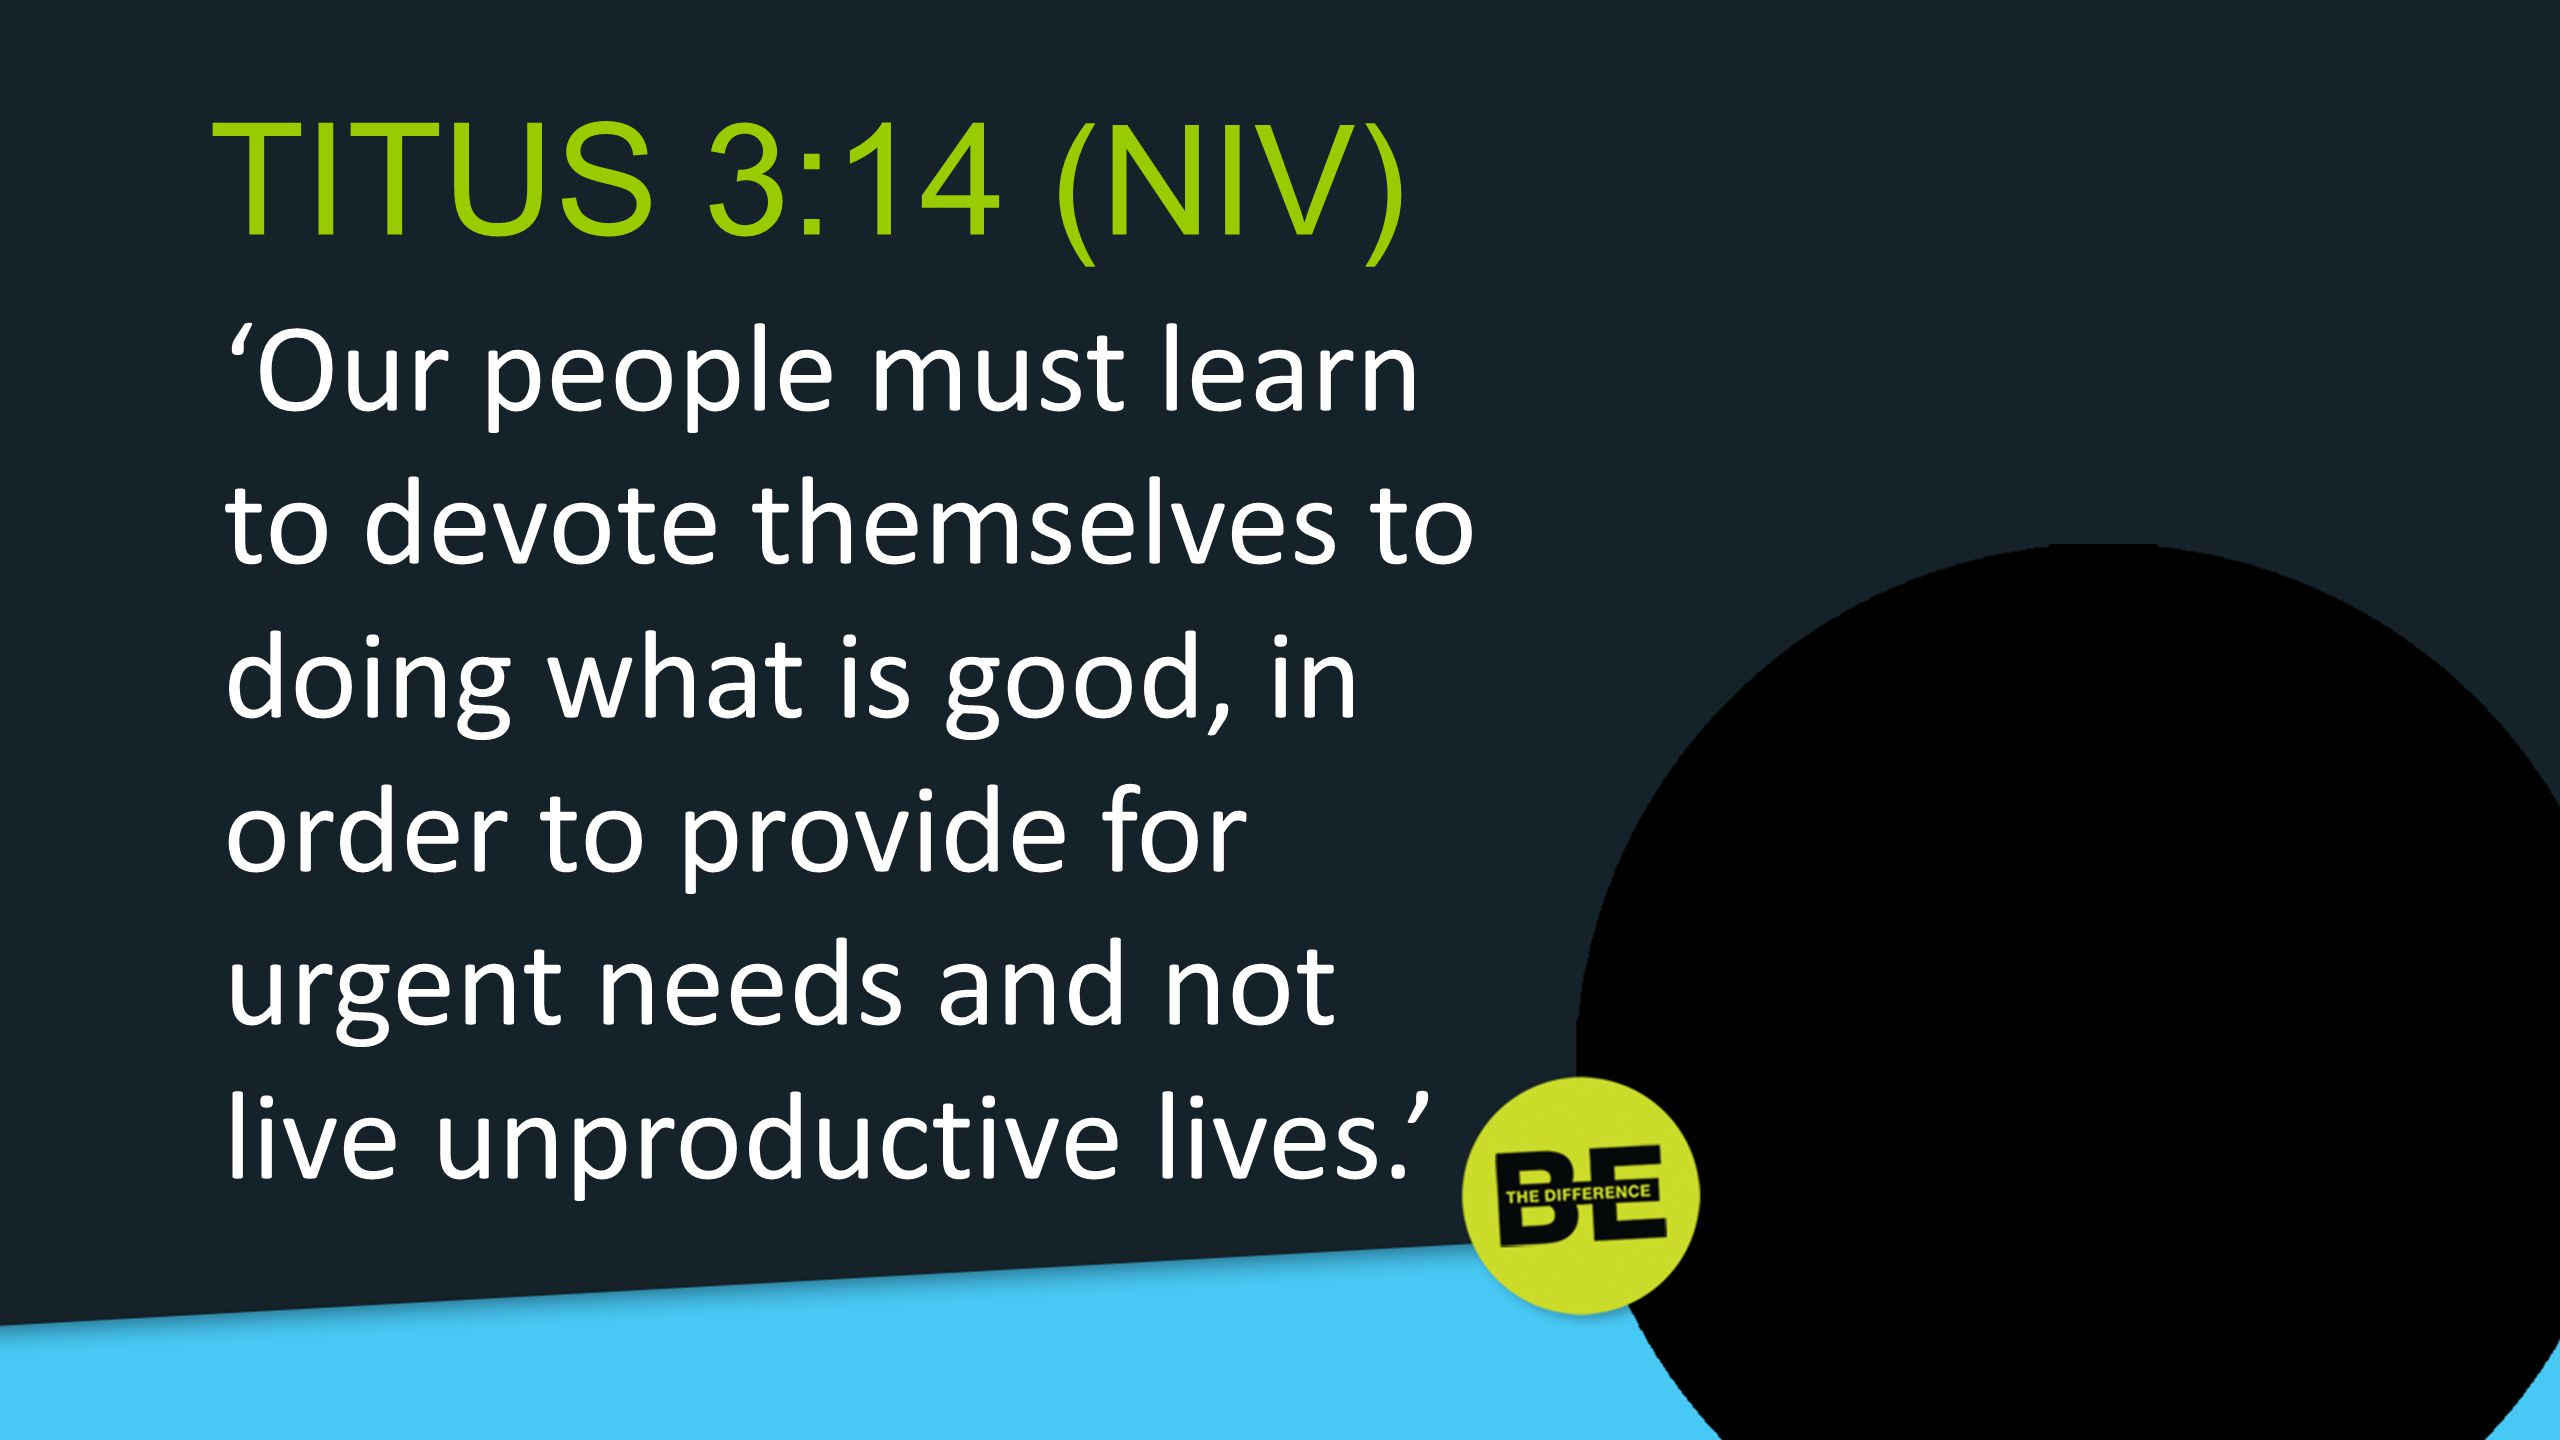 TITUS 3:14 (NIV) 'Our people must learn to devote themselves to doing what is good, in order to provide for urgent needs and not live unproductive lives.'